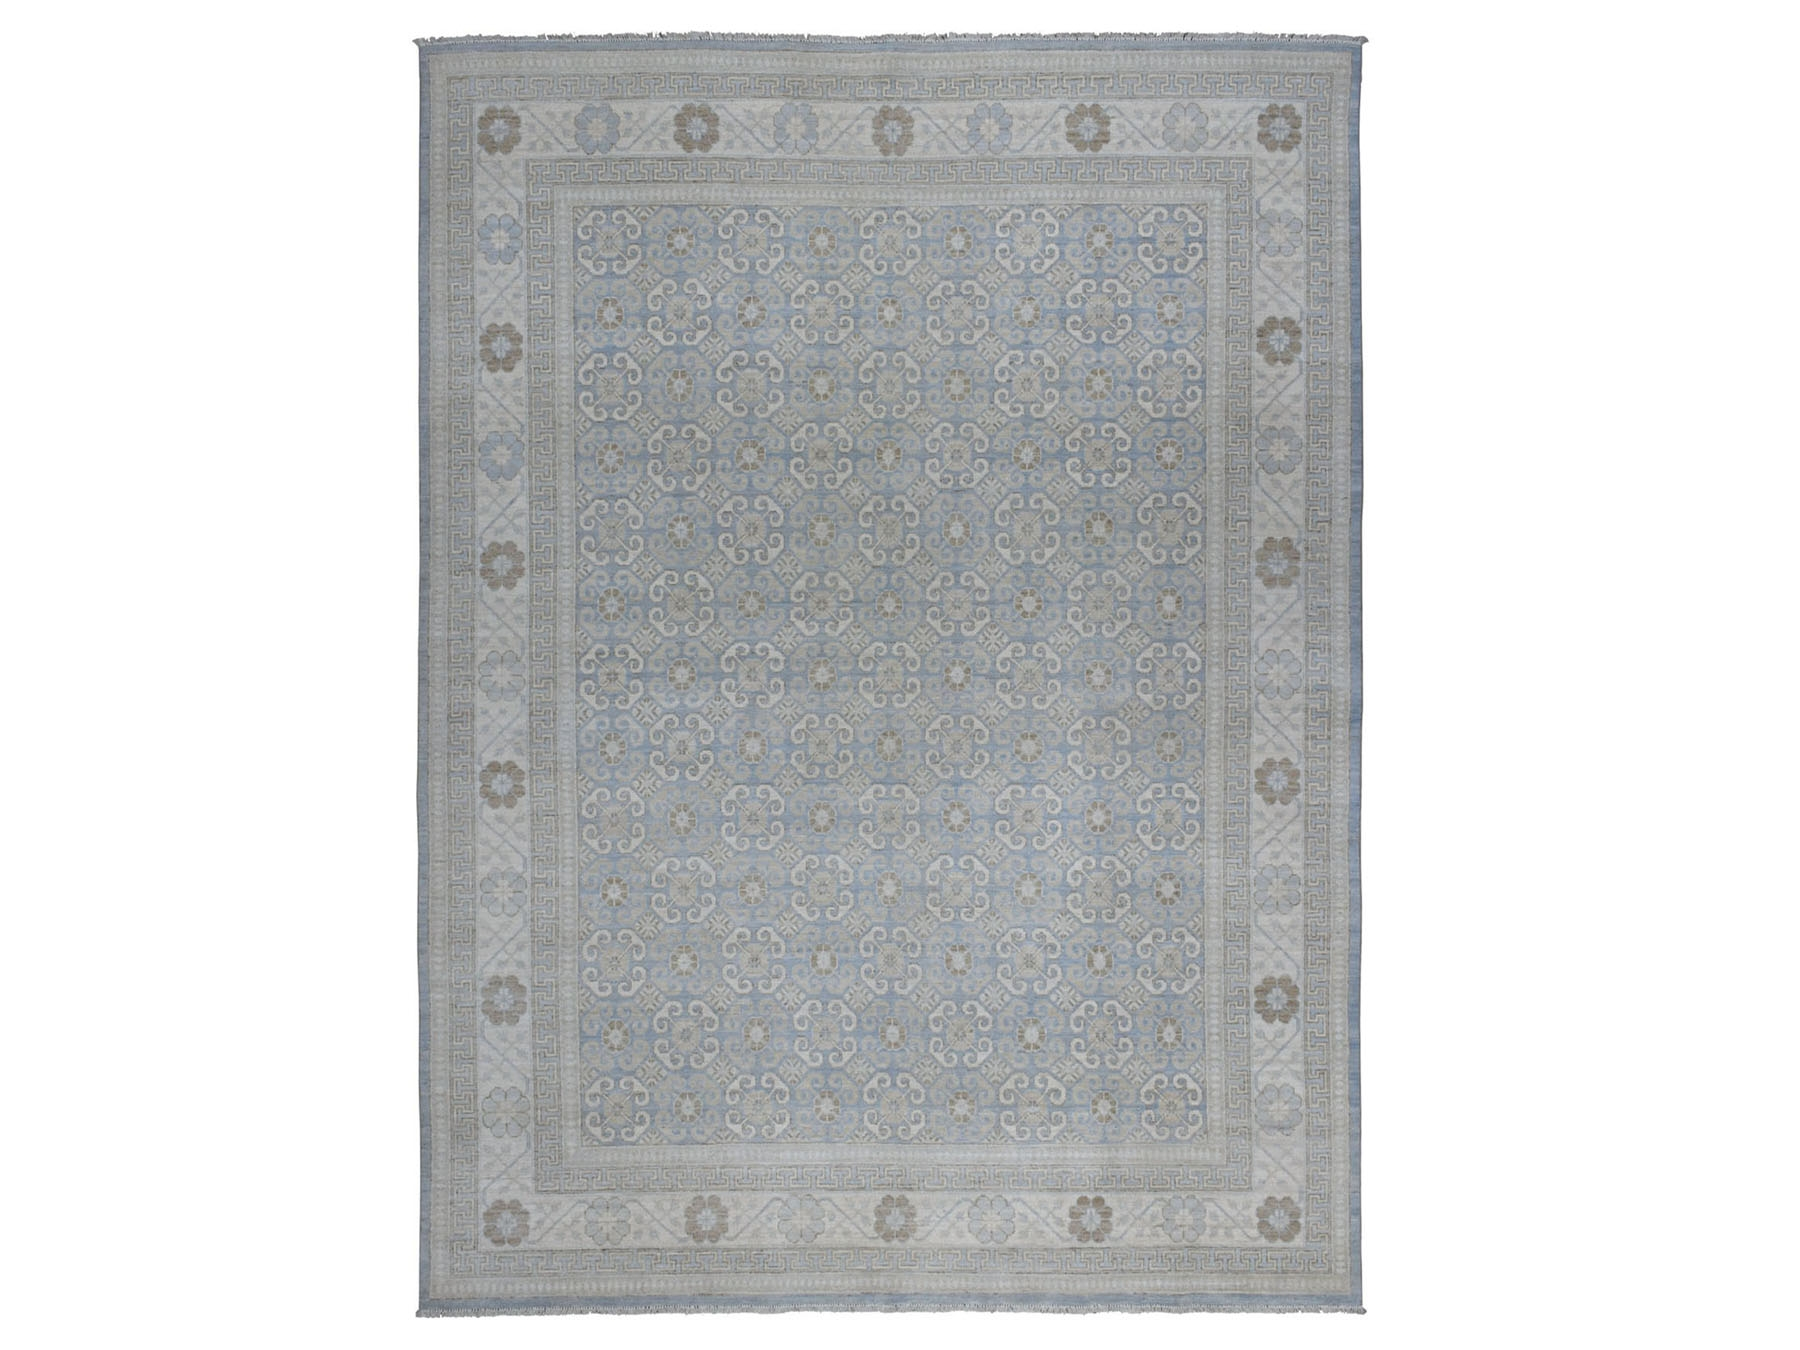 Traditional Wool Hand-Knotted Area Rug 8'10